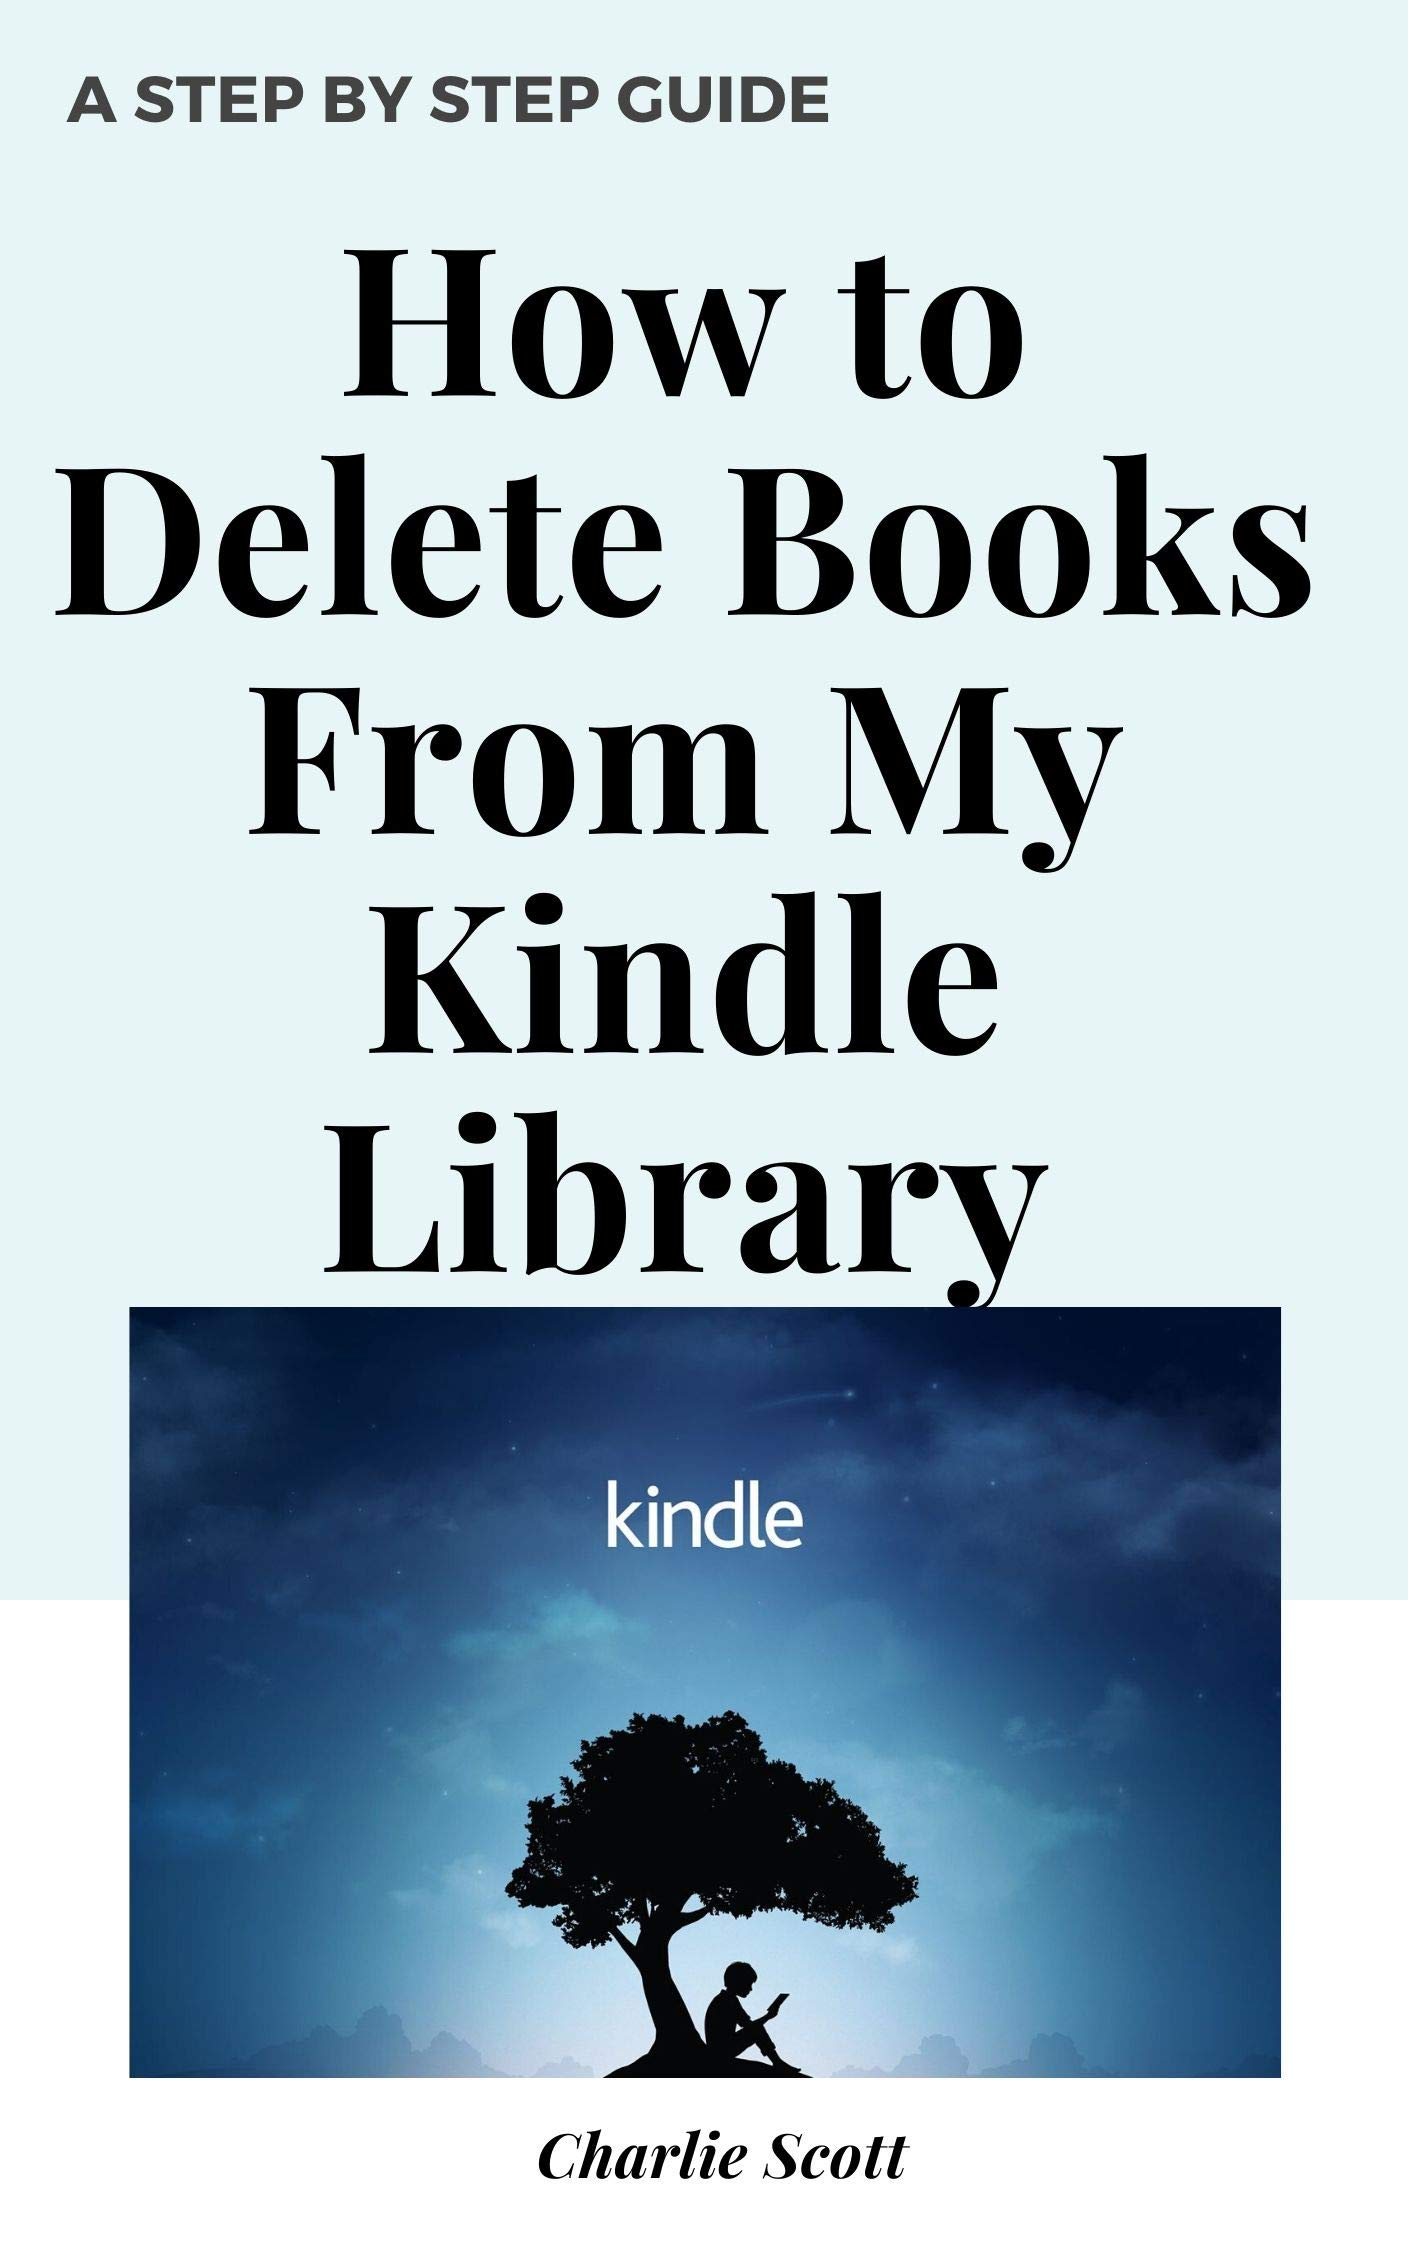 How to Delete Books From My Kindle Library: Delete Books Off Your Kindle Library in Less than 30 Seconds. A Step by Step Guide with Actual Screenshots (Quick Guide Book 13)